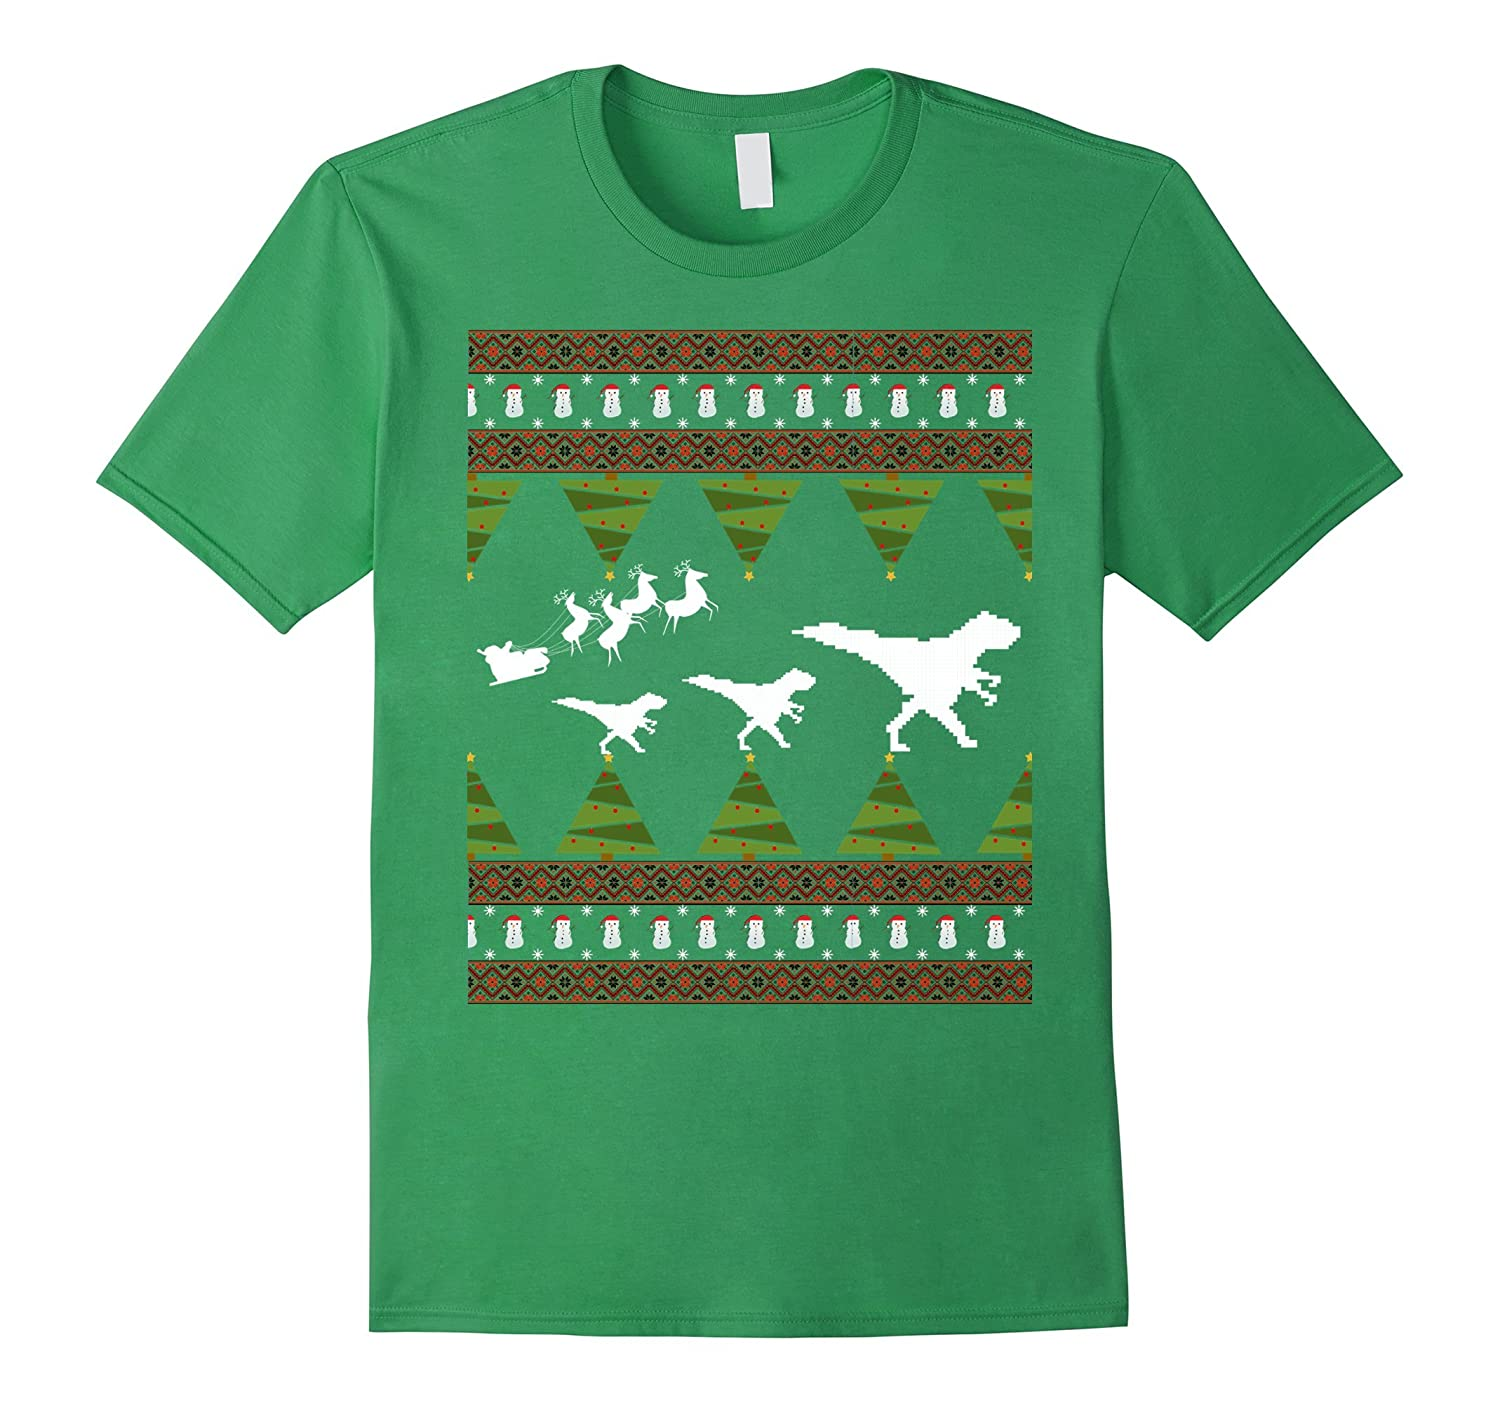 T Rex Ugly Christmas Sweater.T Rex Dinosaur Ugly Christmas Sweater Tree Costume T Shirt Anz